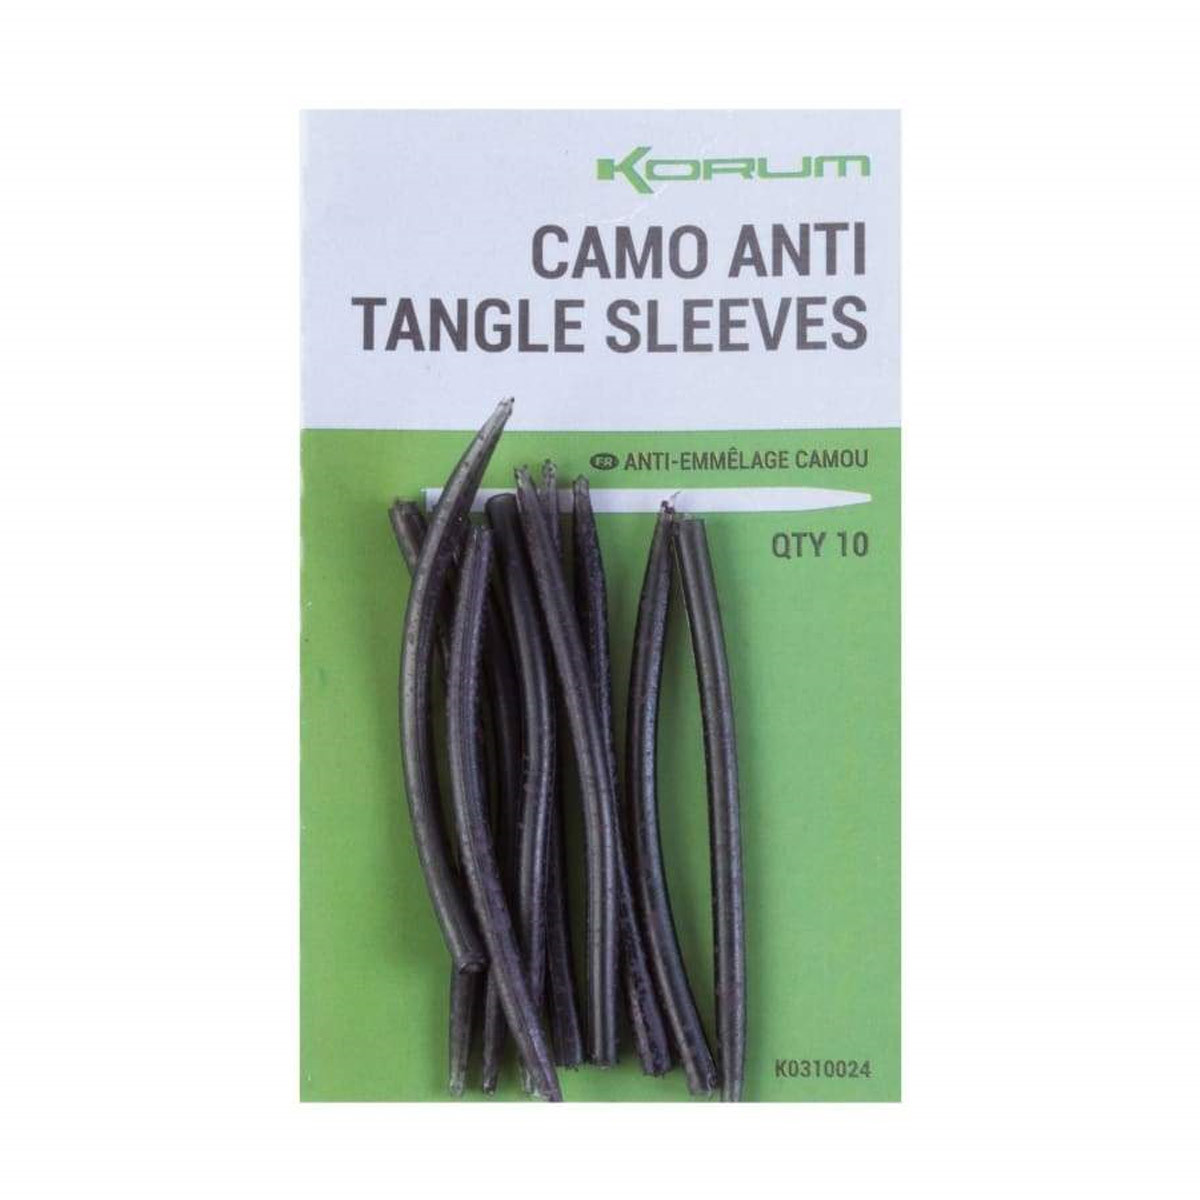 Korum Camo Anti Tangle Sleeves